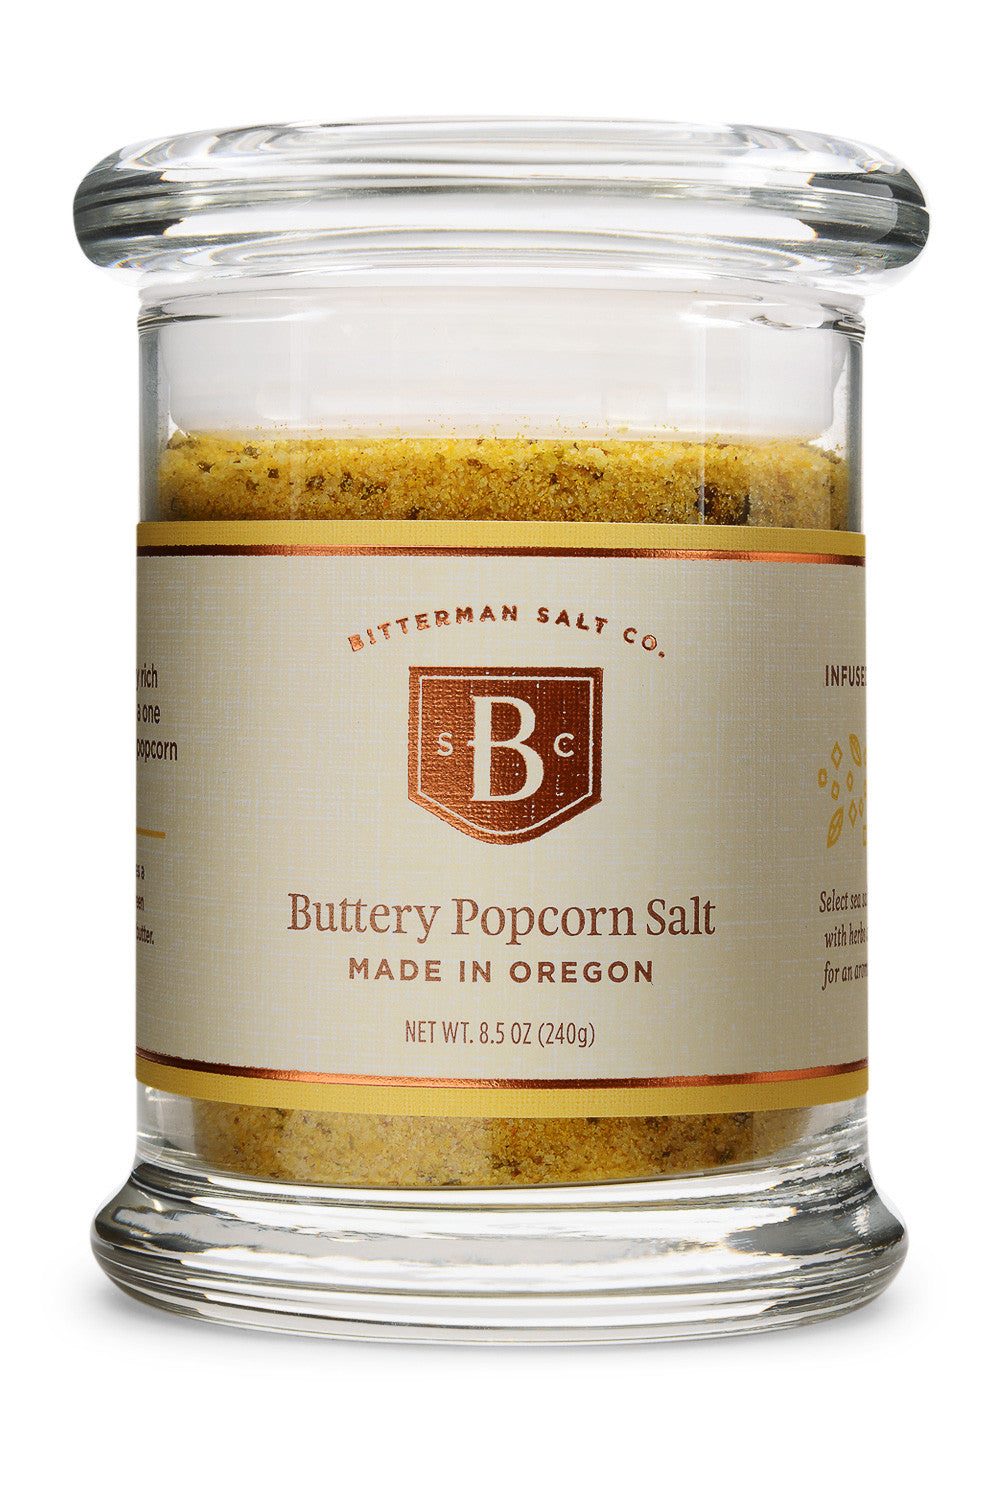 Bitterman S Buttery Popcorn Salt Flavored Salt The Meadow